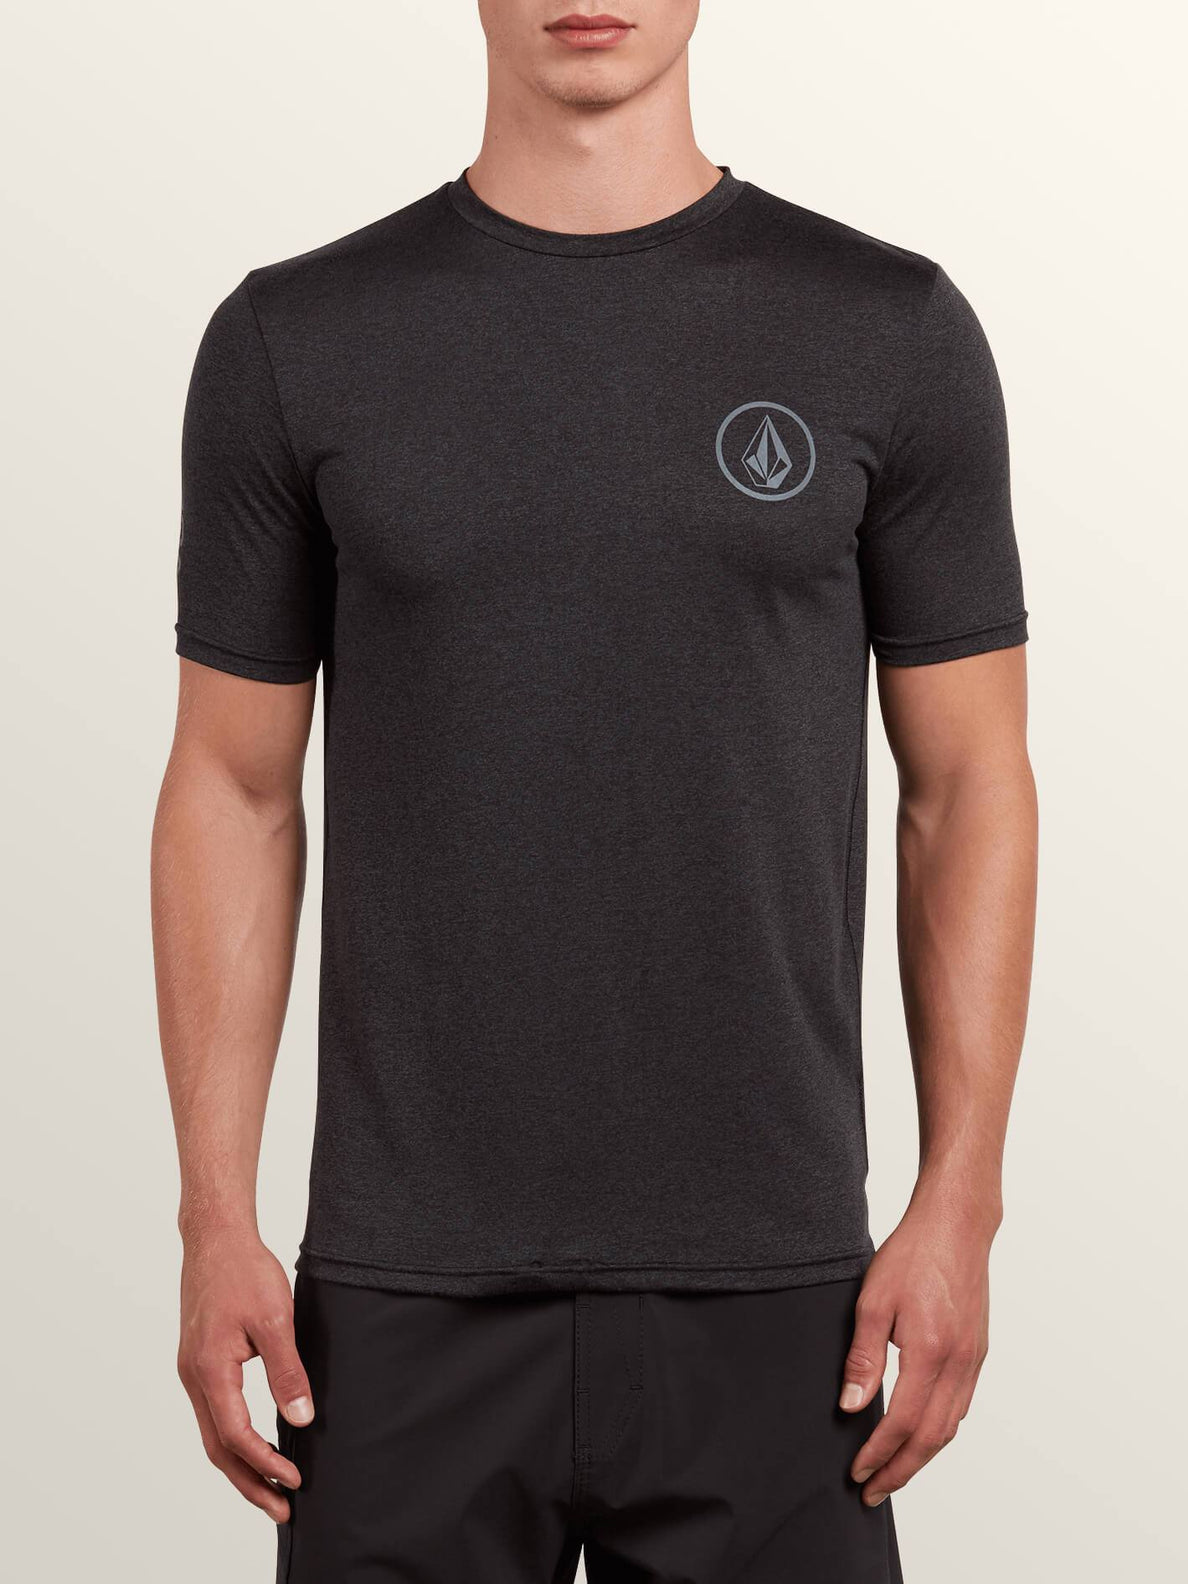 Lido Heather Short Sleeve Rashguard In Charcoal Heather, Front View